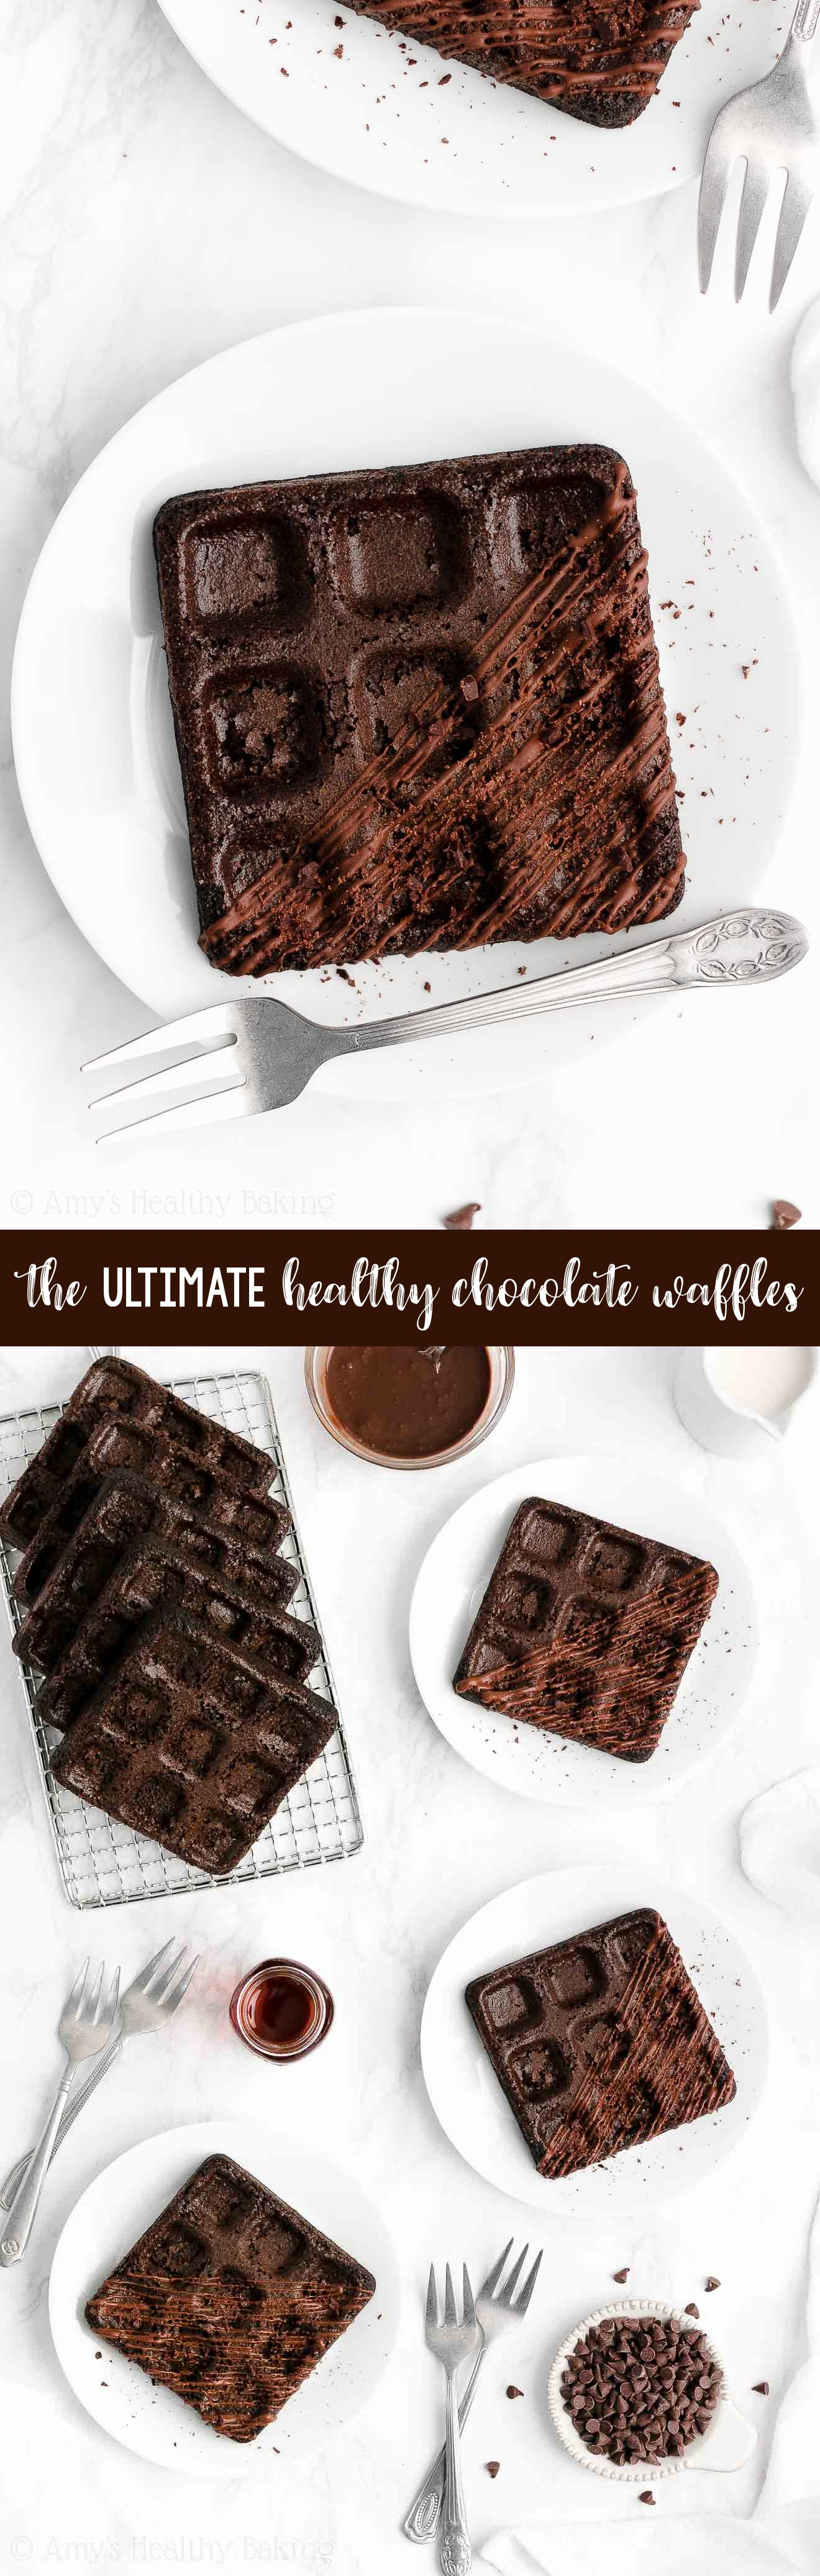 ULTIMATE Best Healthy Low Calorie Homemade Dark Chocolate Waffles From Scratch